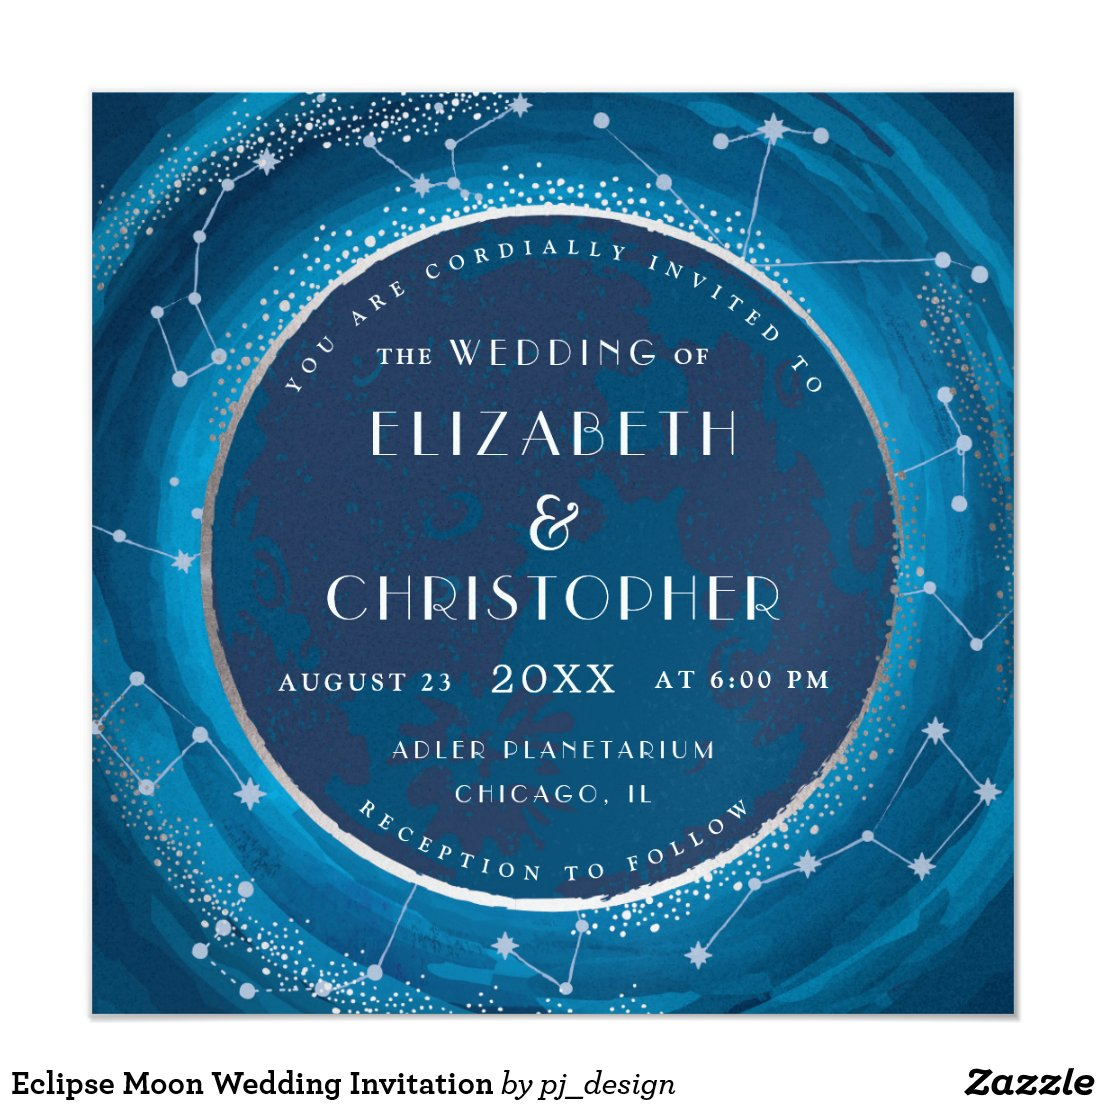 Eclipse Moon and Stars Wedding Invitation